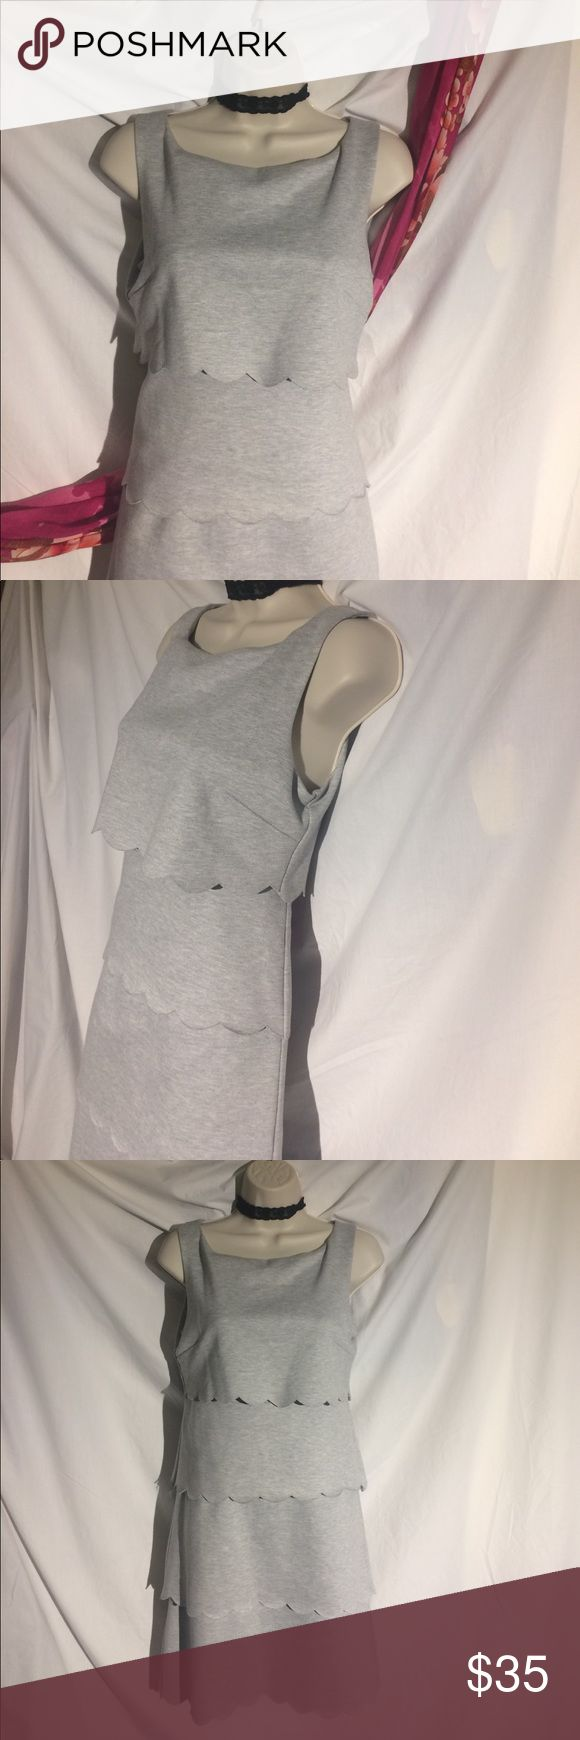 NWOT philosophy dress! Gorgeous Gorgeous soft heather gray philosophy dress brand-new with tags. In a beautiful light weight wash and wear style this will go from office tonight easily. I couldn't return it but it'll look great on you! Philosophy Dresses Midi